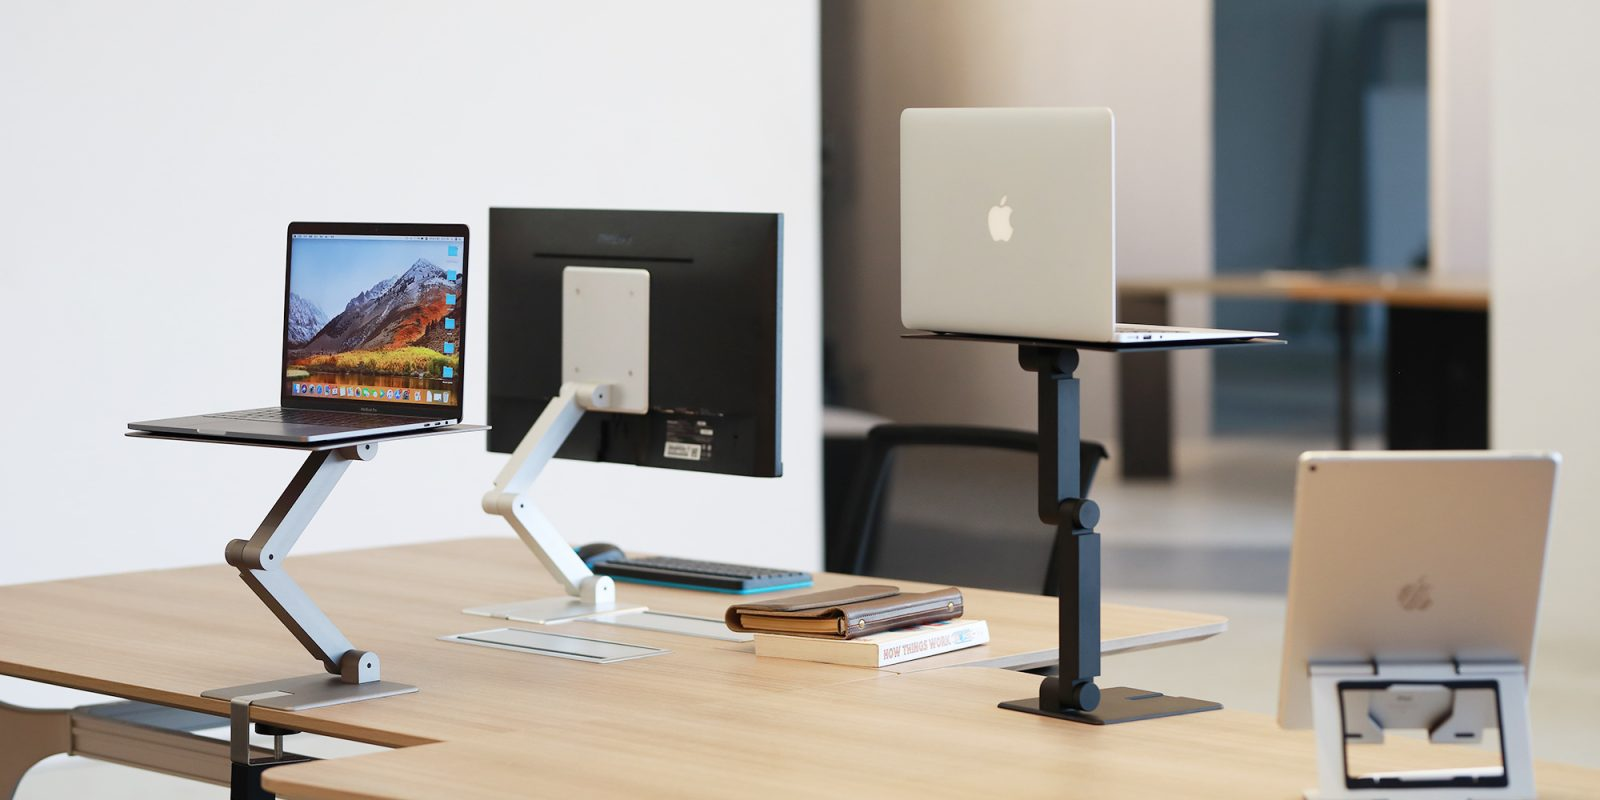 Get on your feet with the portable Maxtand laptop/device stand-up desk mount $79 (Reg. $109)